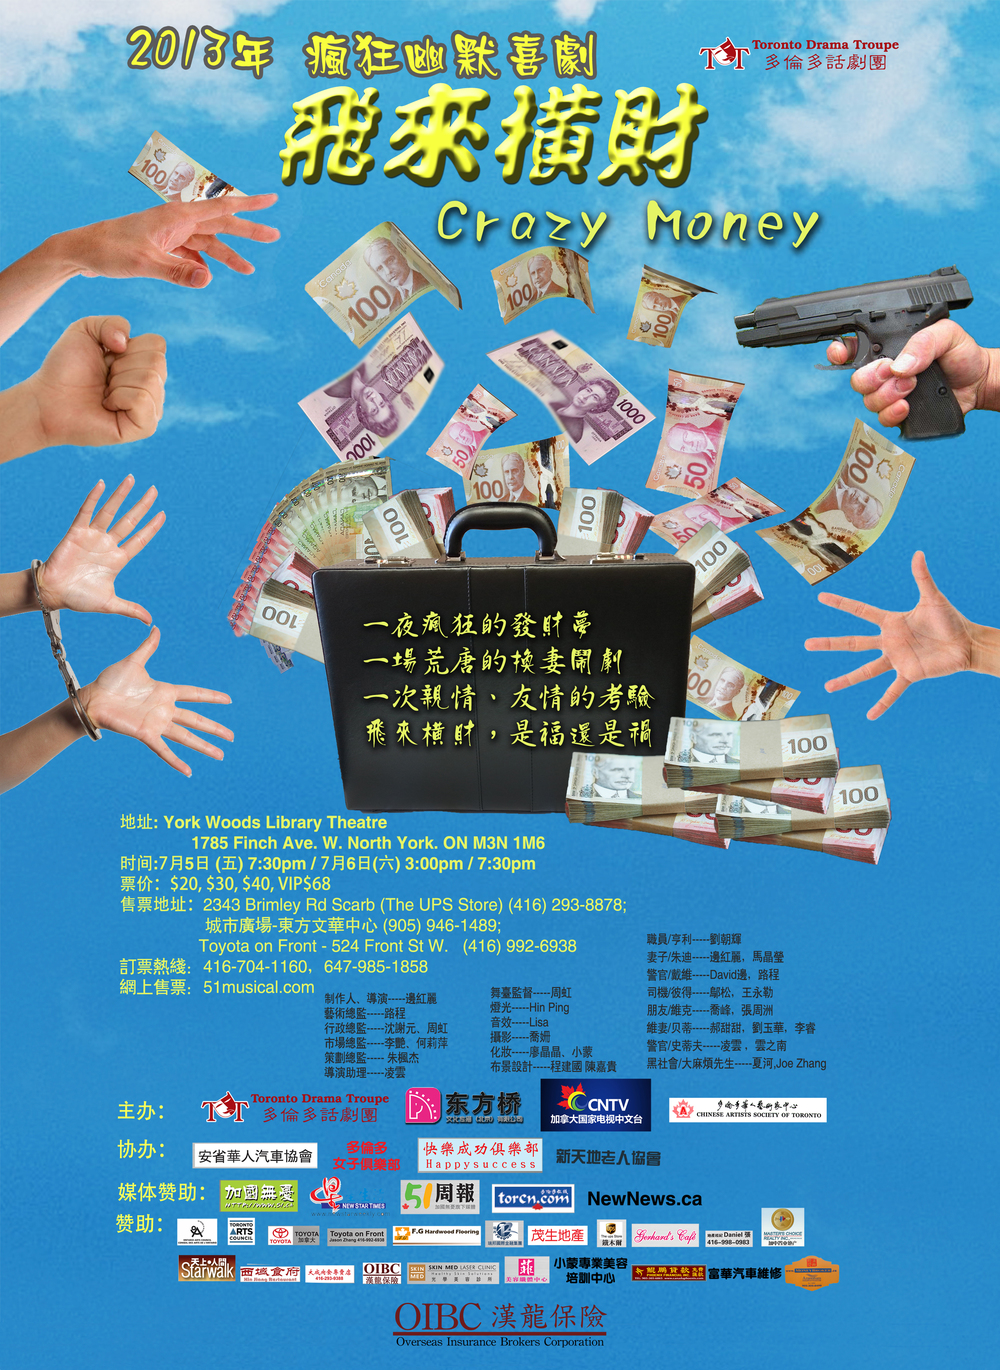 Crazy Money with OIBC adv poster.jpg